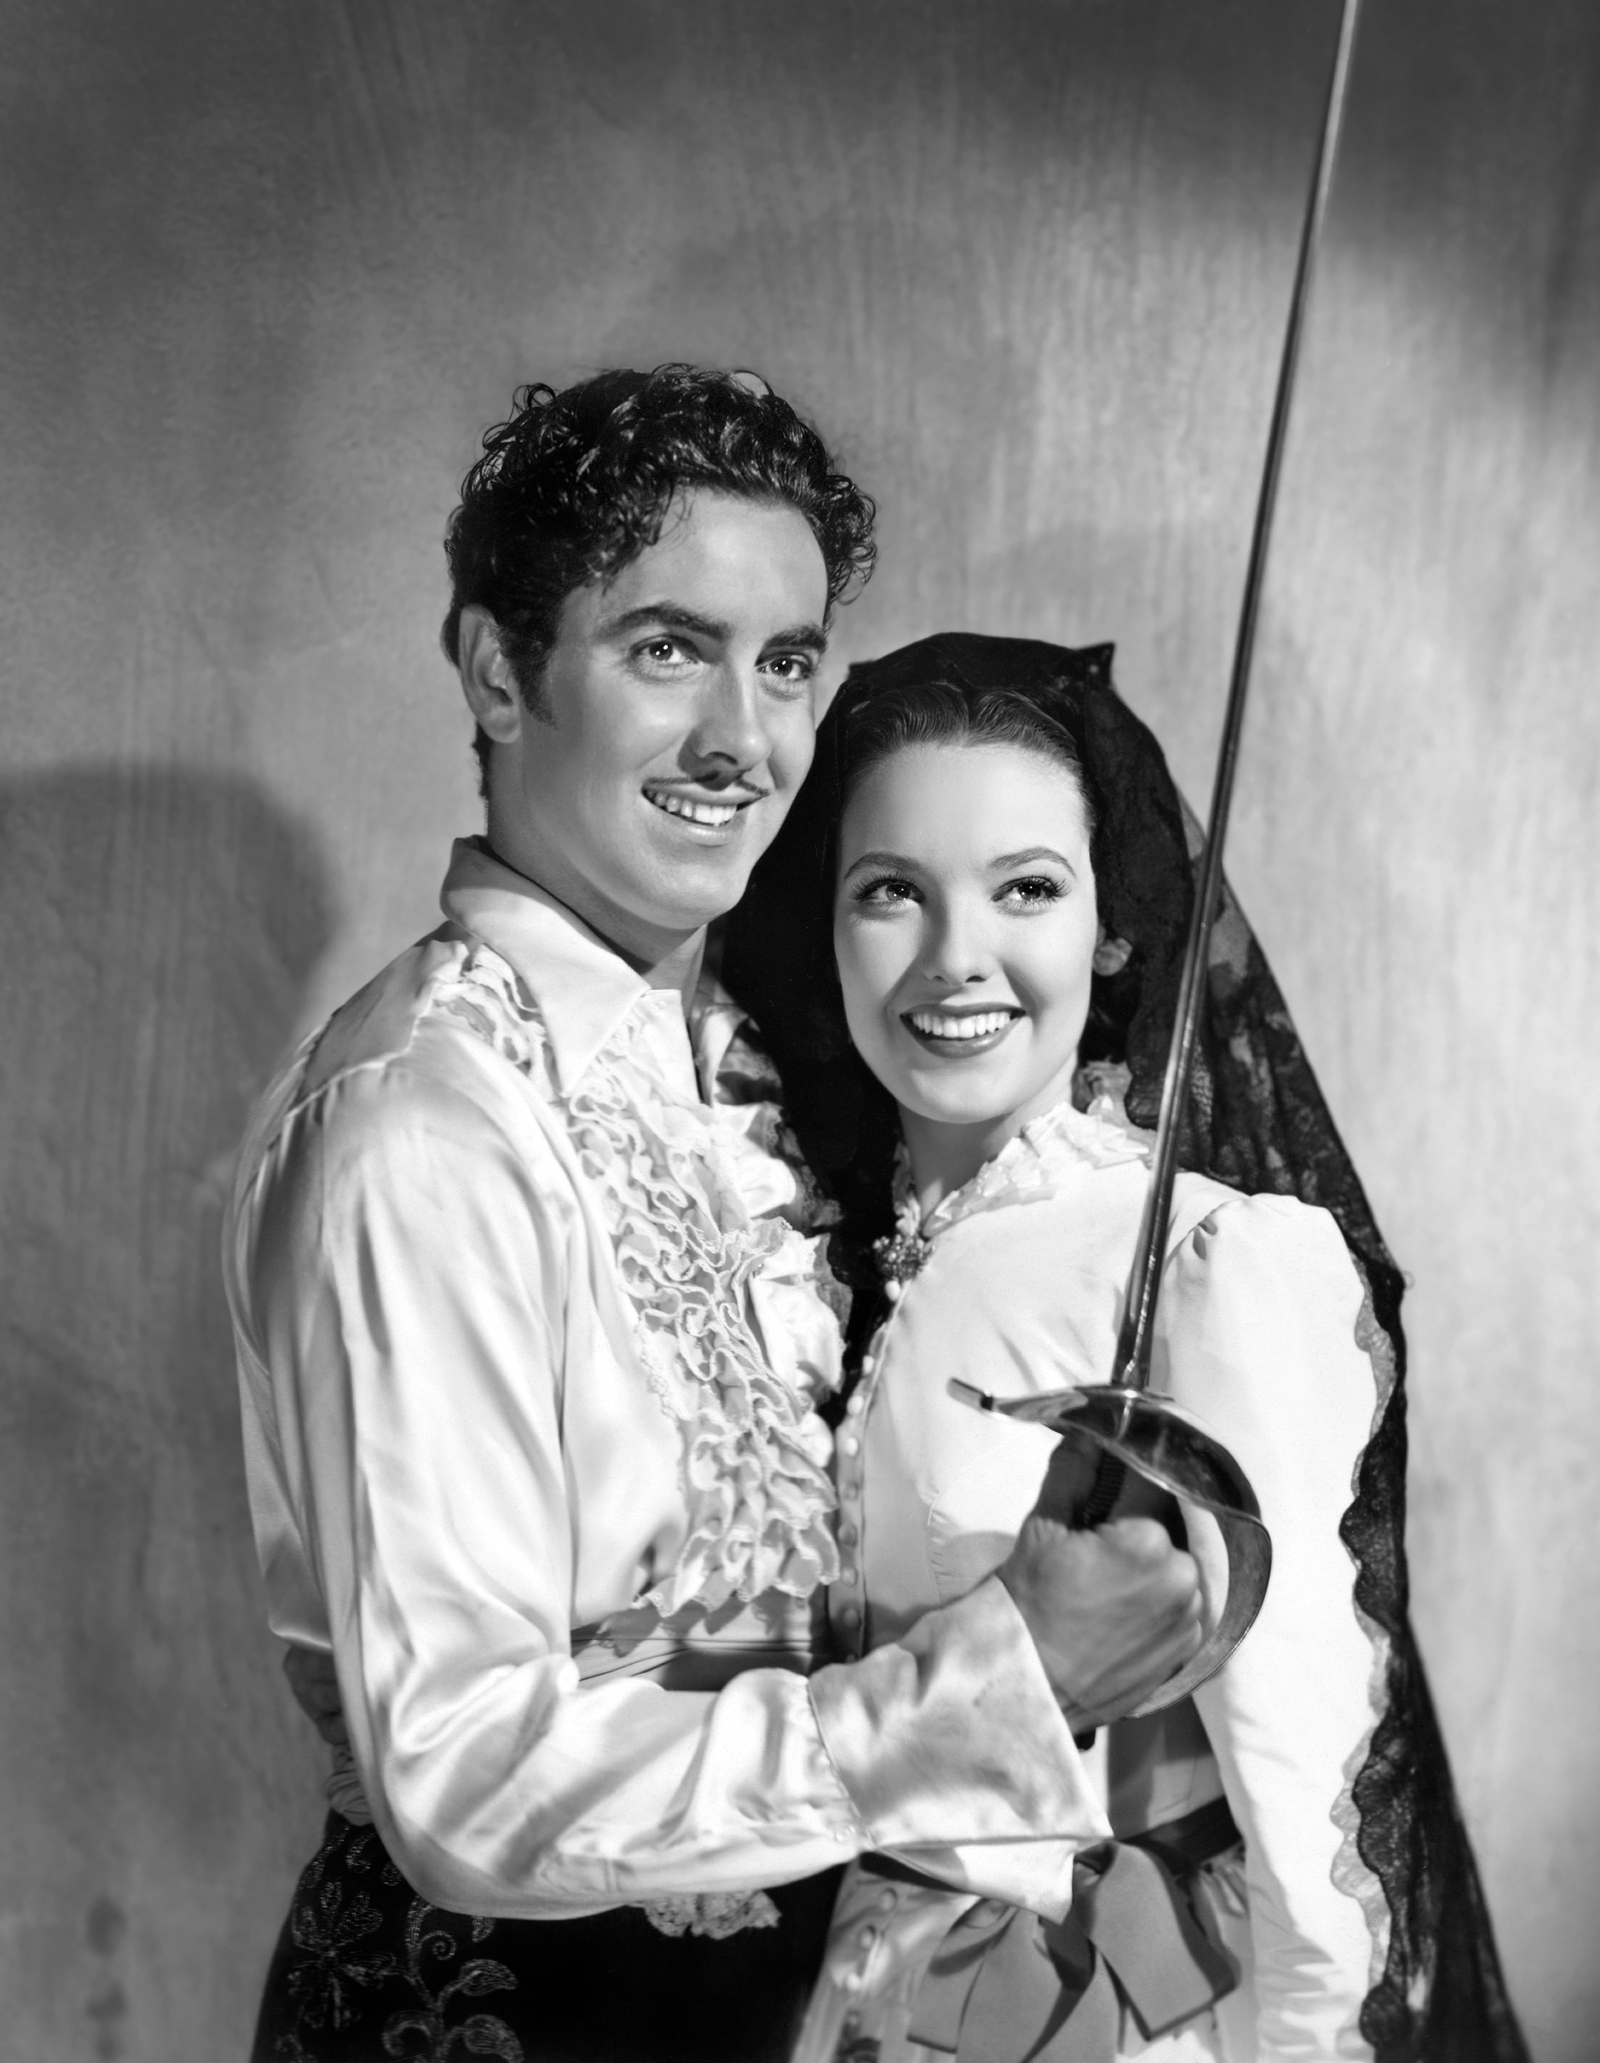 With Linda Darnell The Mark of Zorro With Linda Darnell